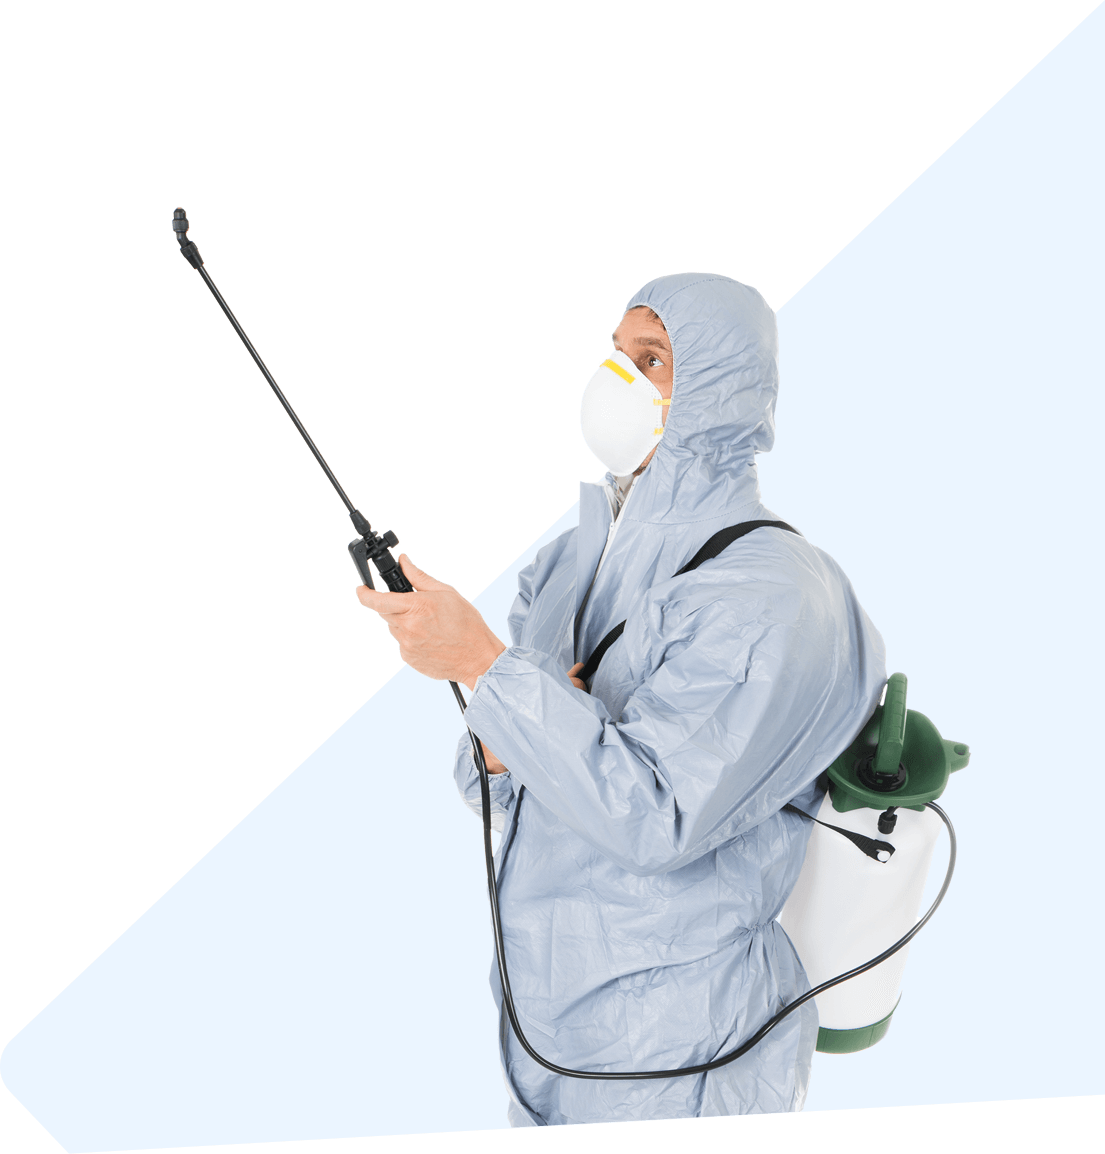 Best Pest Control Near Me - 468+ Reviewed, Find Us Now